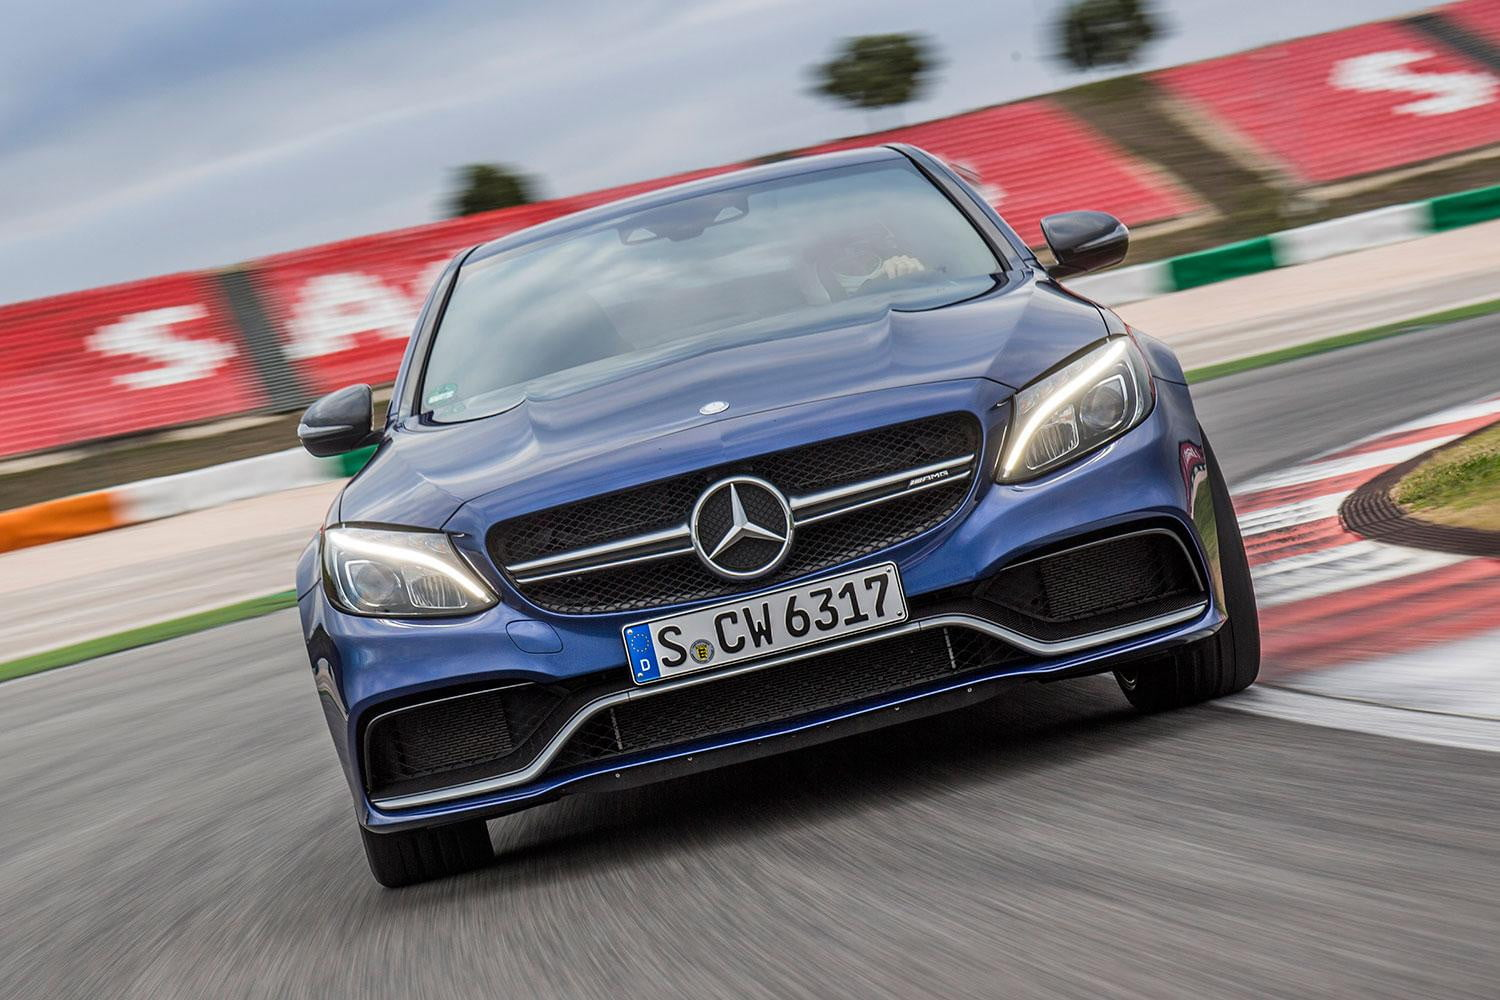 2015 mercedes amg c63 and c63 s first drive review. Black Bedroom Furniture Sets. Home Design Ideas